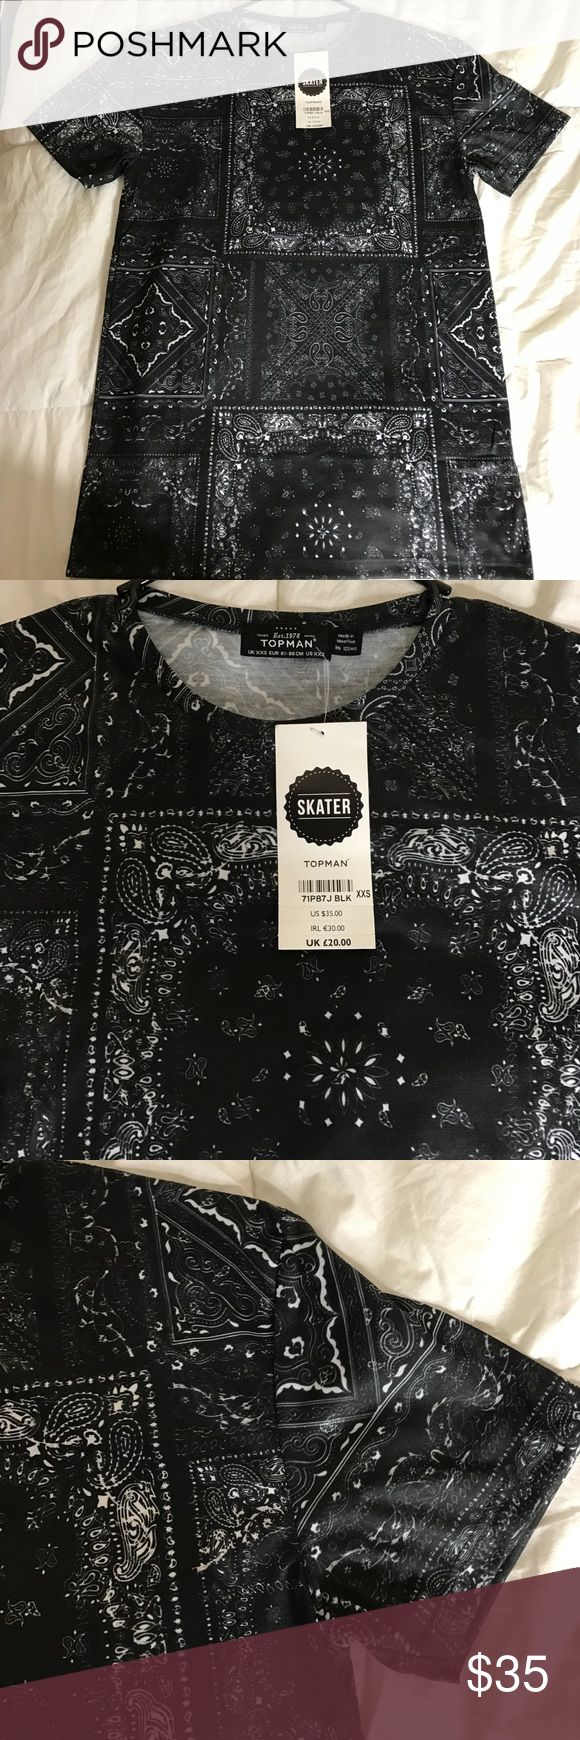 Topman Skater fit T-shirt Brand new with tags. Skater fit size XXS: meaning it fits a little looser more like a small or xs Topman Shirts Tees - Short Sleeve